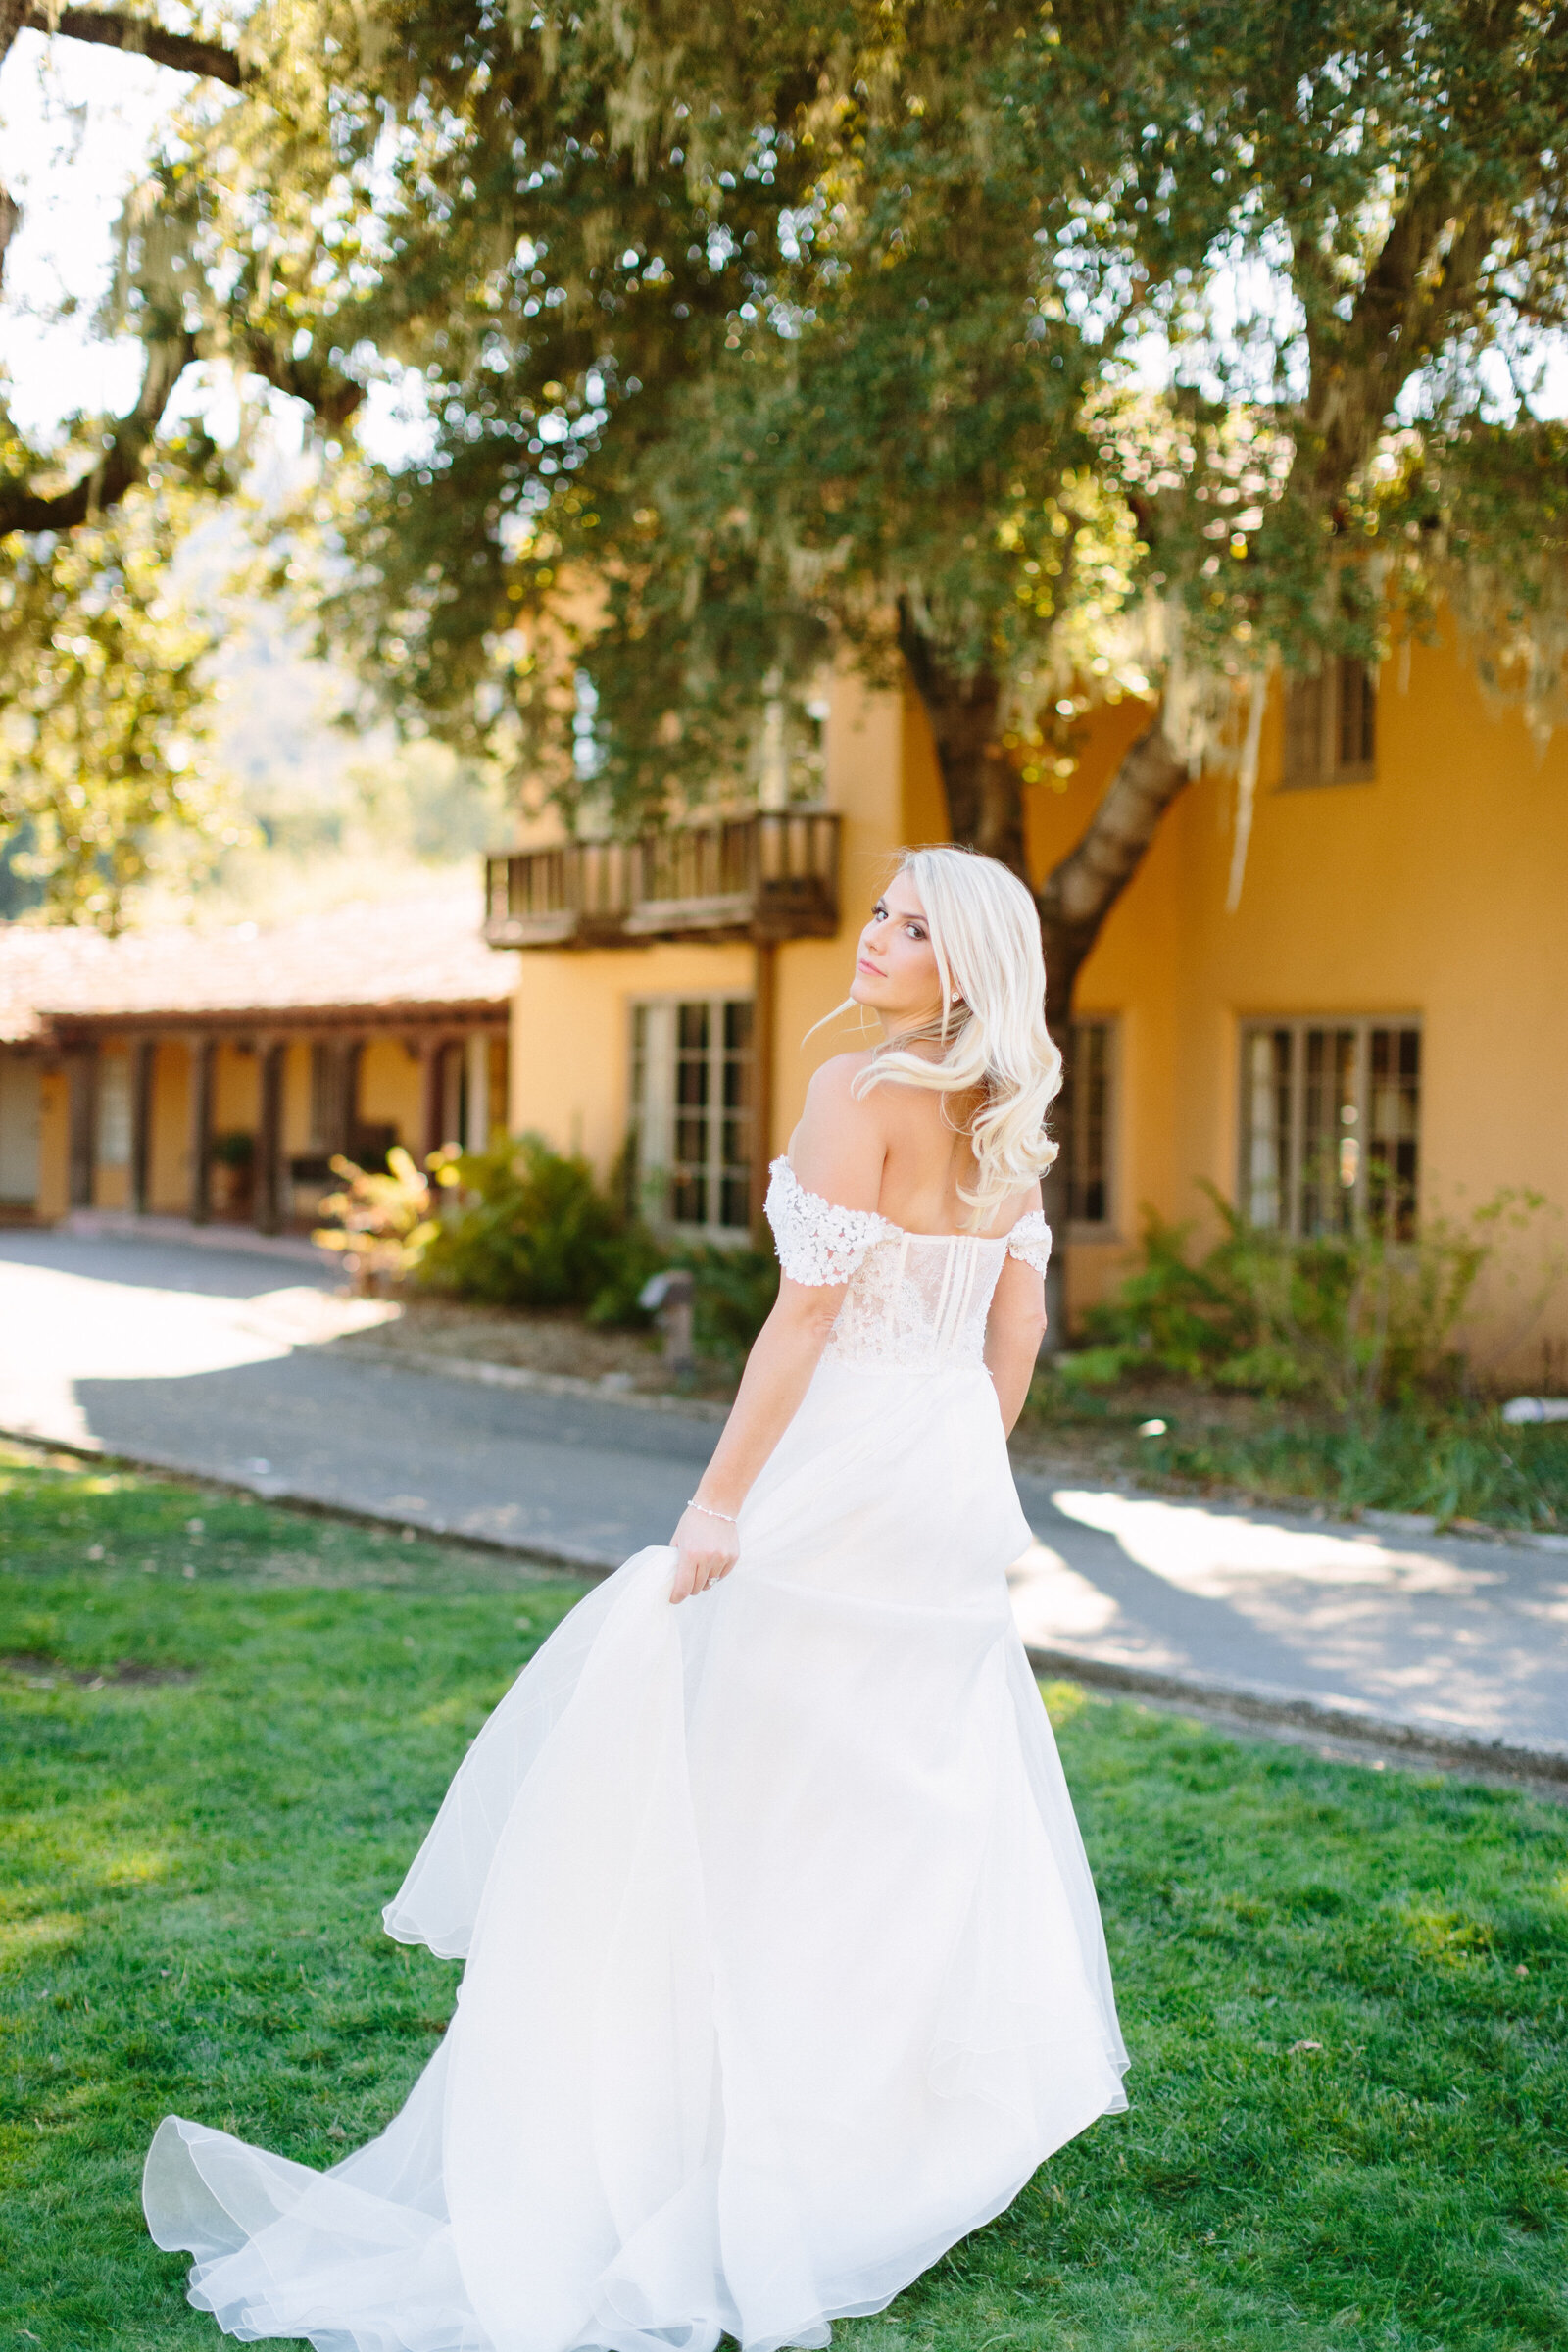 larissa-cleveland-elope-eleopement-intimate-wedding-photographer-san-francisco-napa-carmel-017